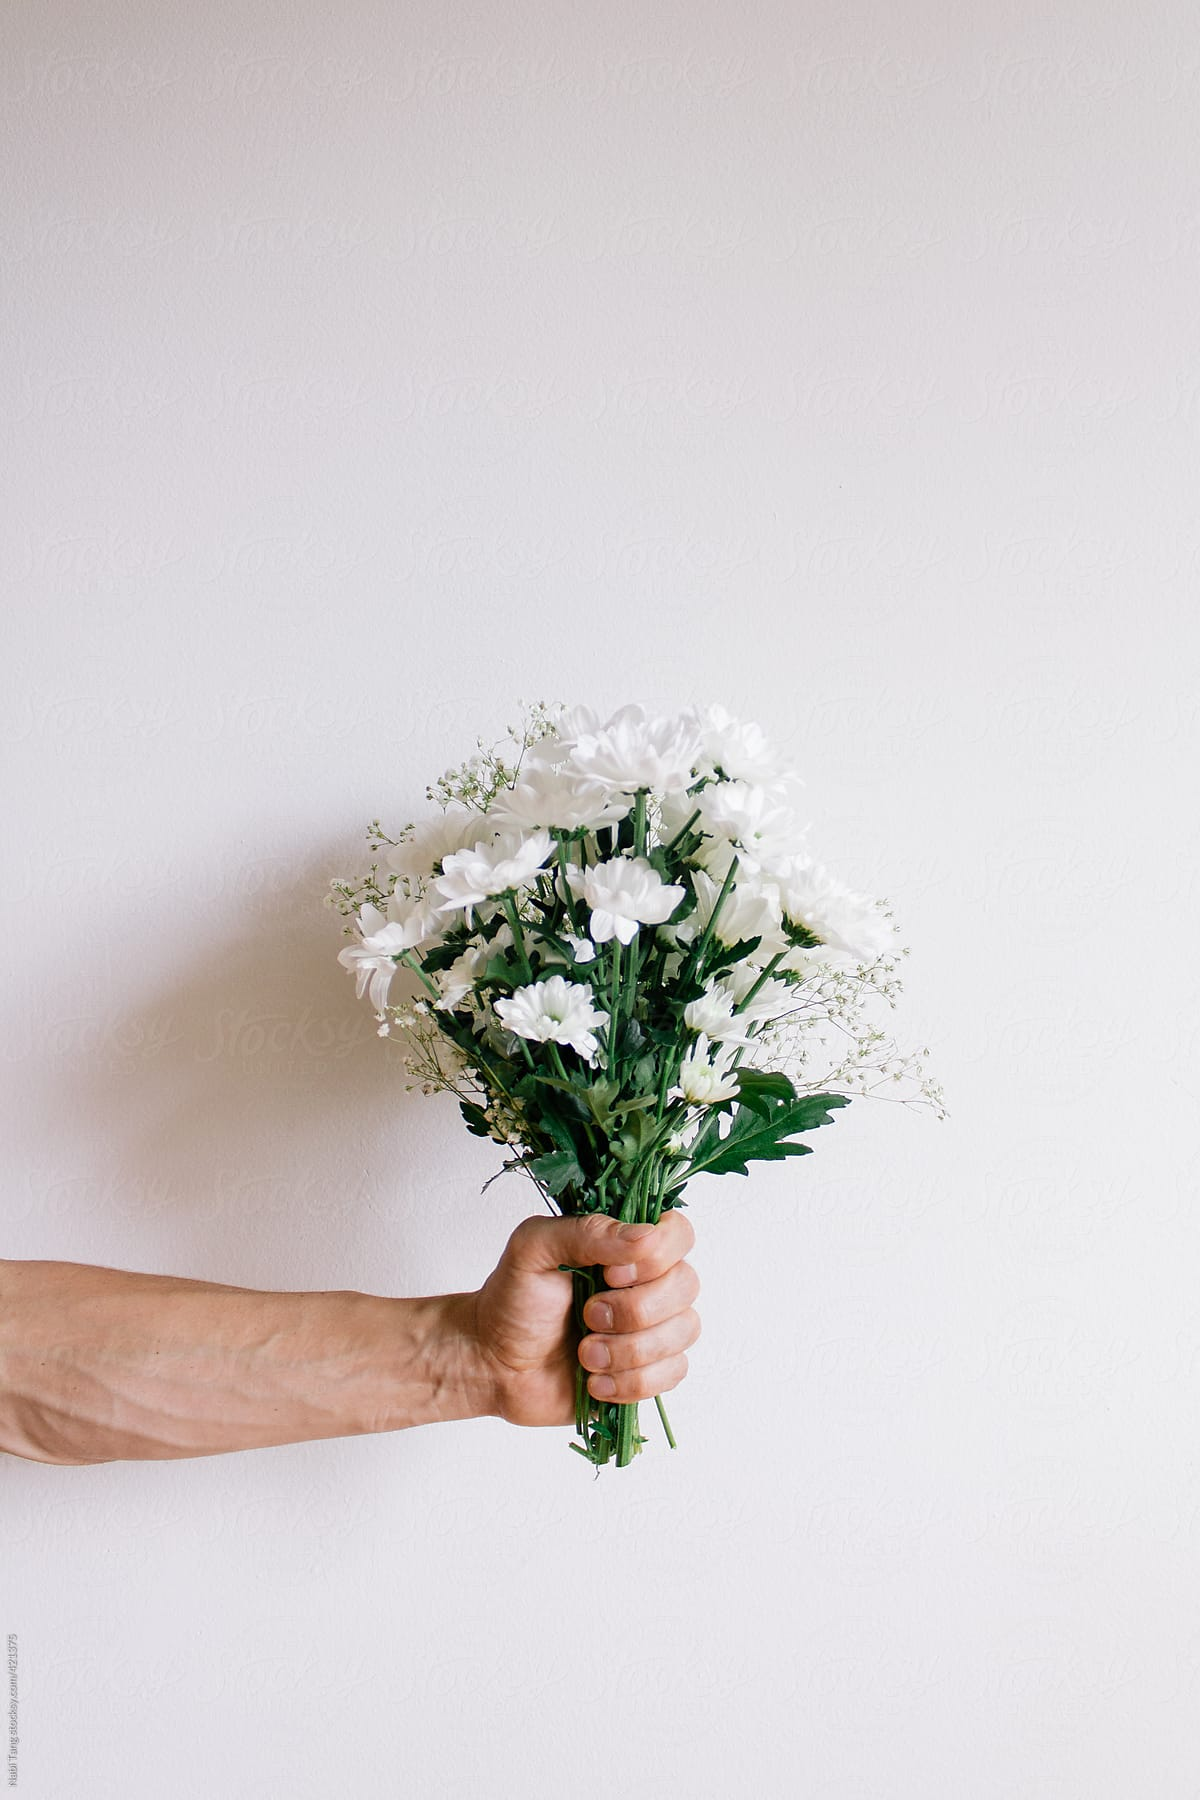 Man Holding White Flower Bouquet Stocksy United